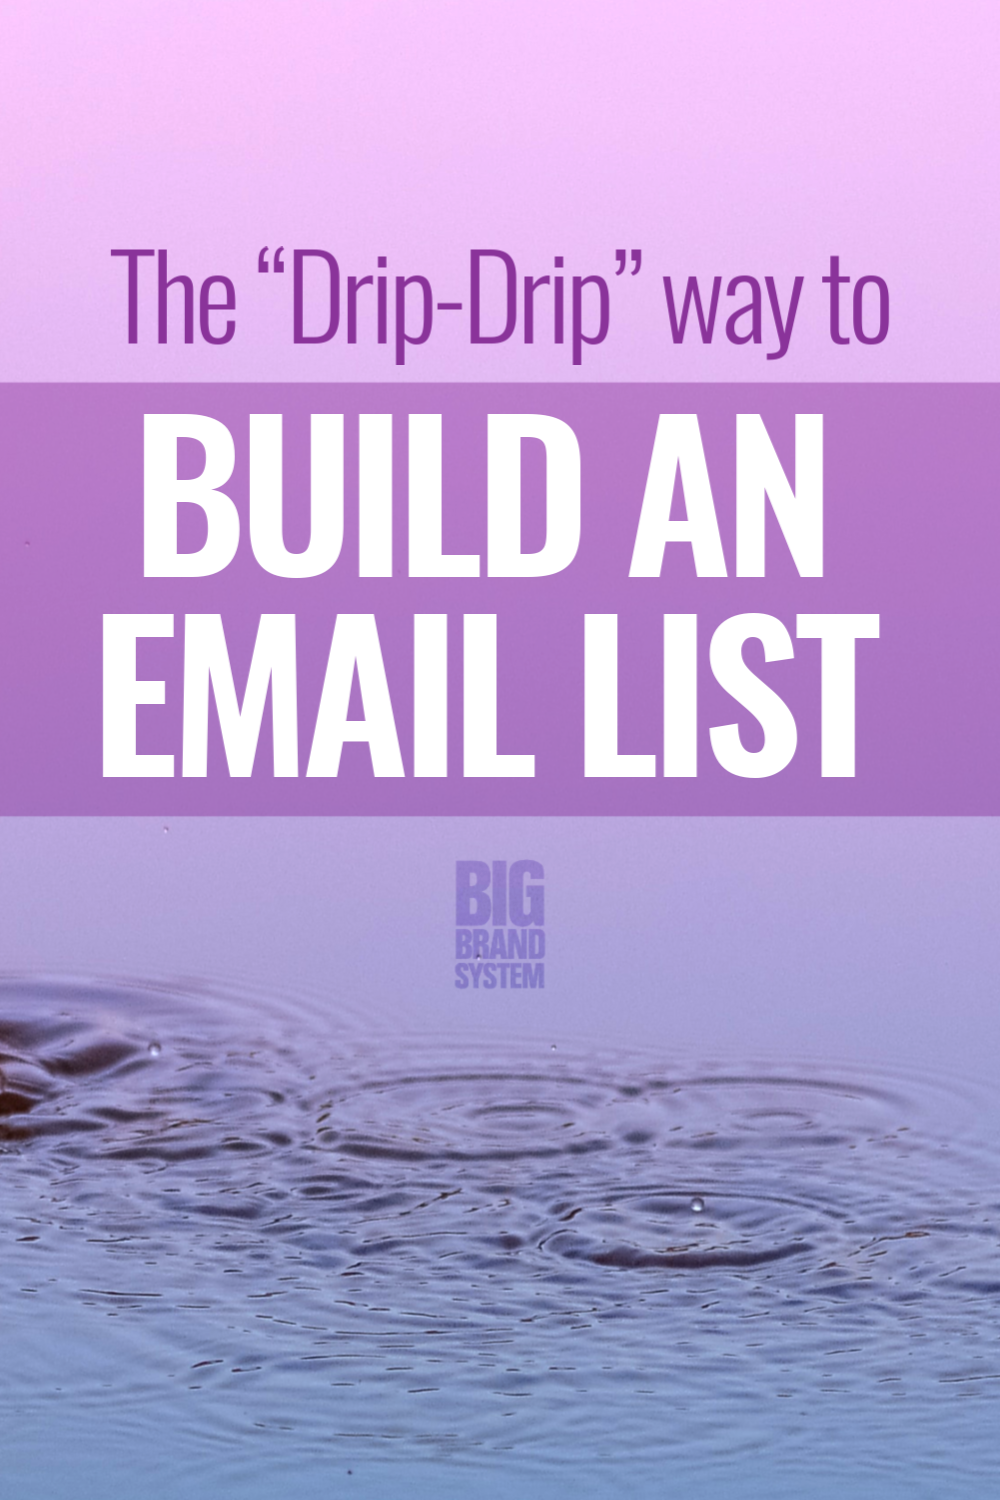 How To Build An Email List The Fast And Slow Methods In 2020 Email Marketing Inspiration Email Marketing Strategy Email Marketing Lists